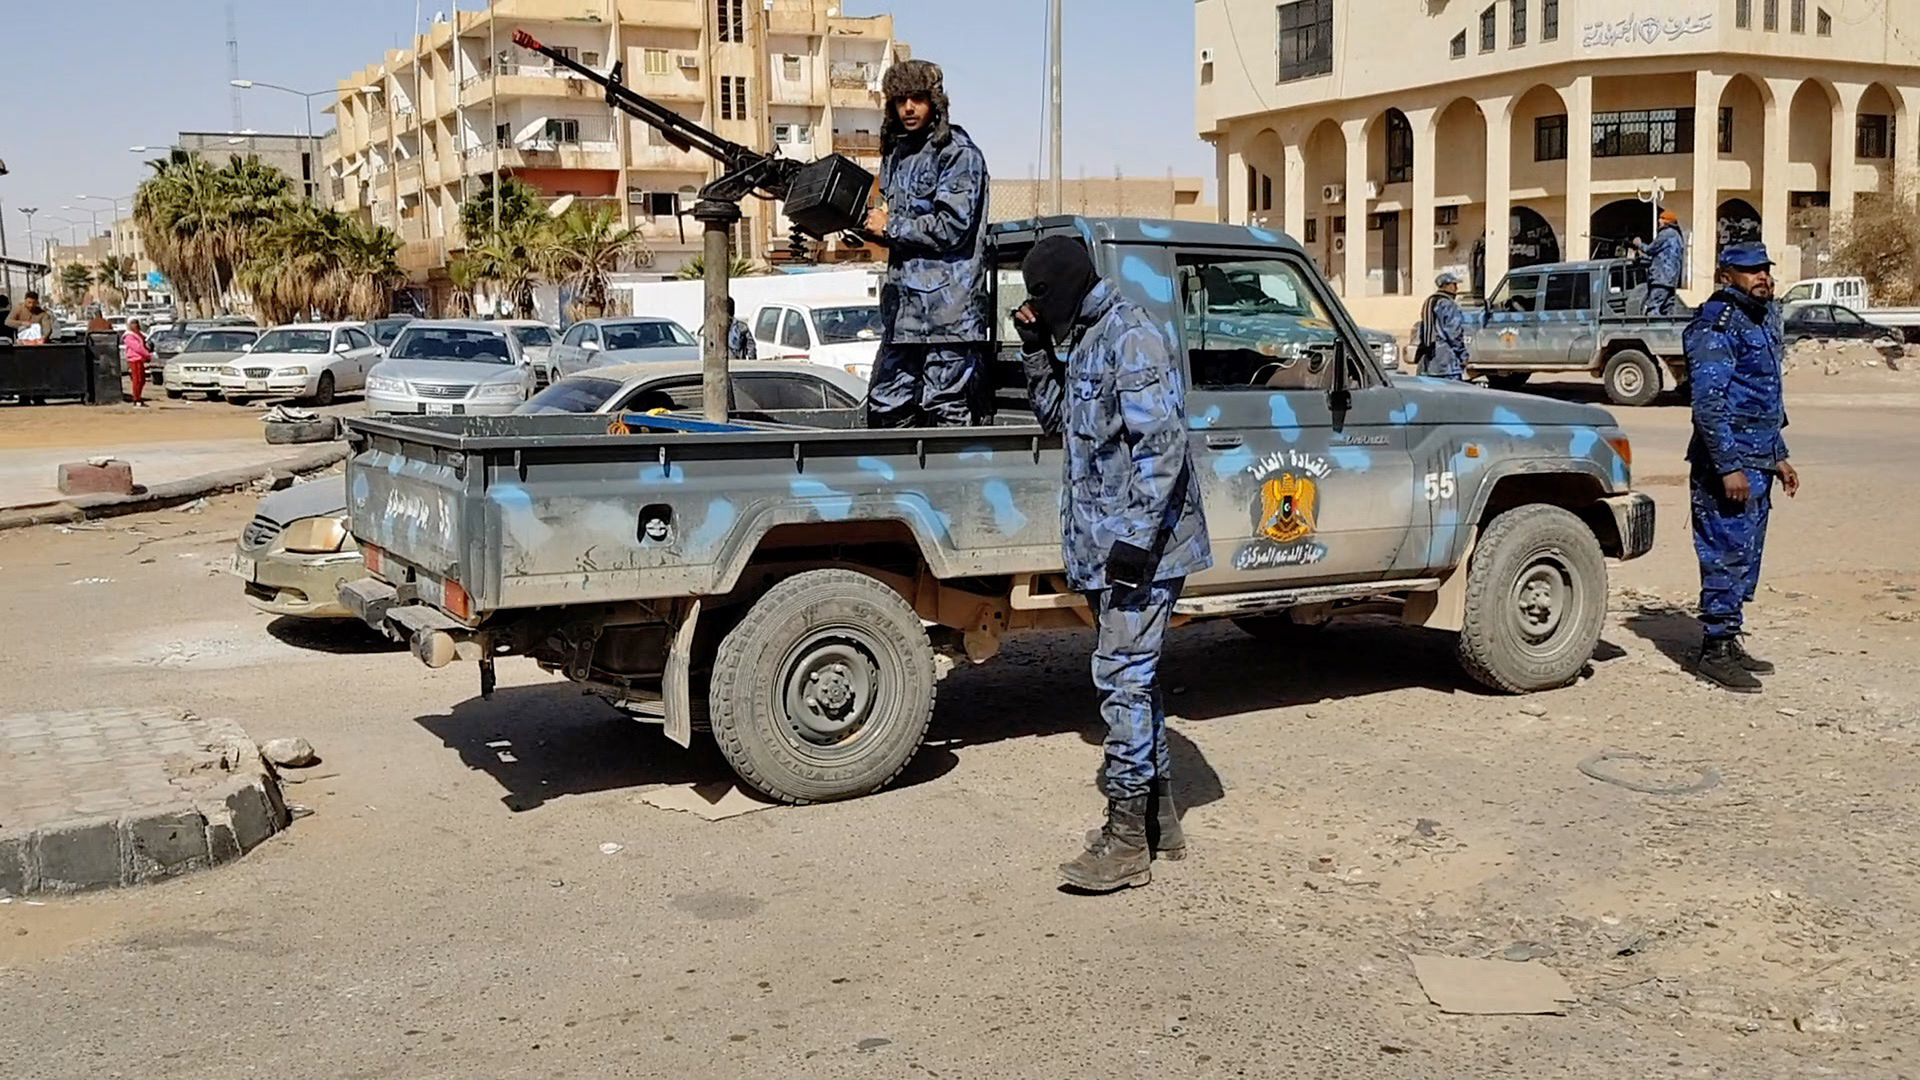 Forces loyal to Libyan strongman Khalifa Haftar patroling in downtown Sebha, the biggest city in southern Libya, in February.